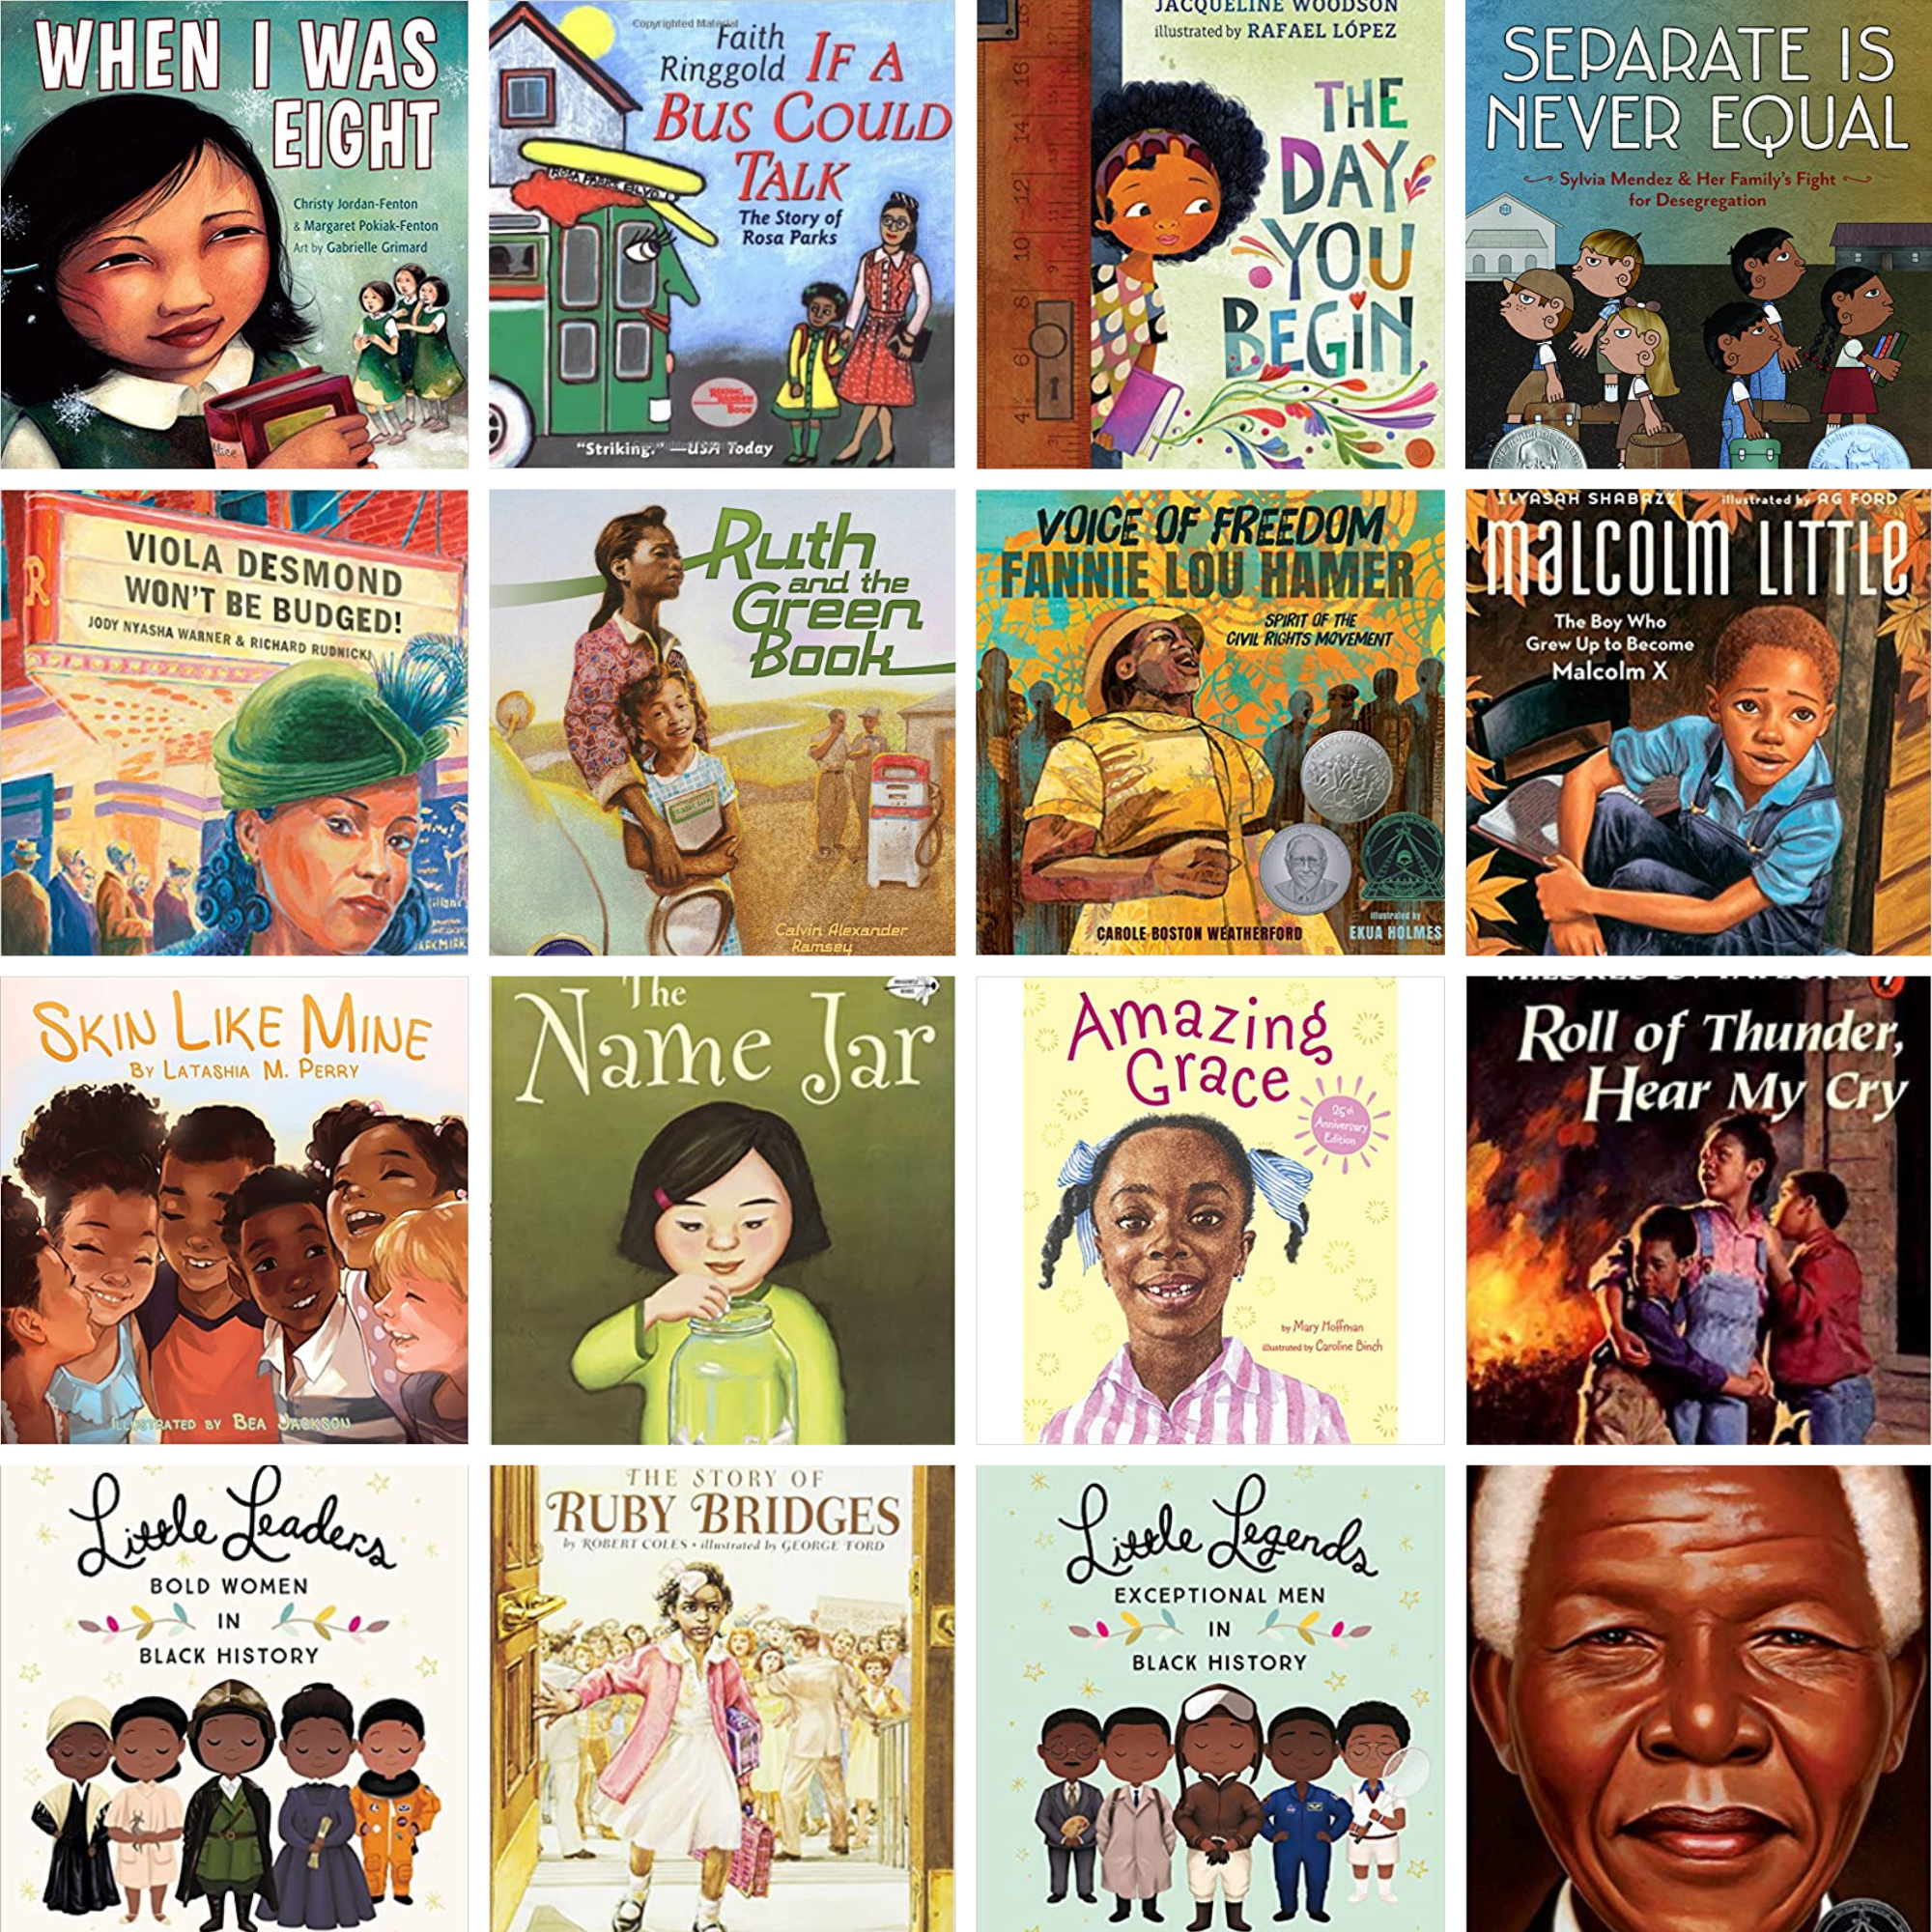 16 Children's Books About Diversity and Discrimination